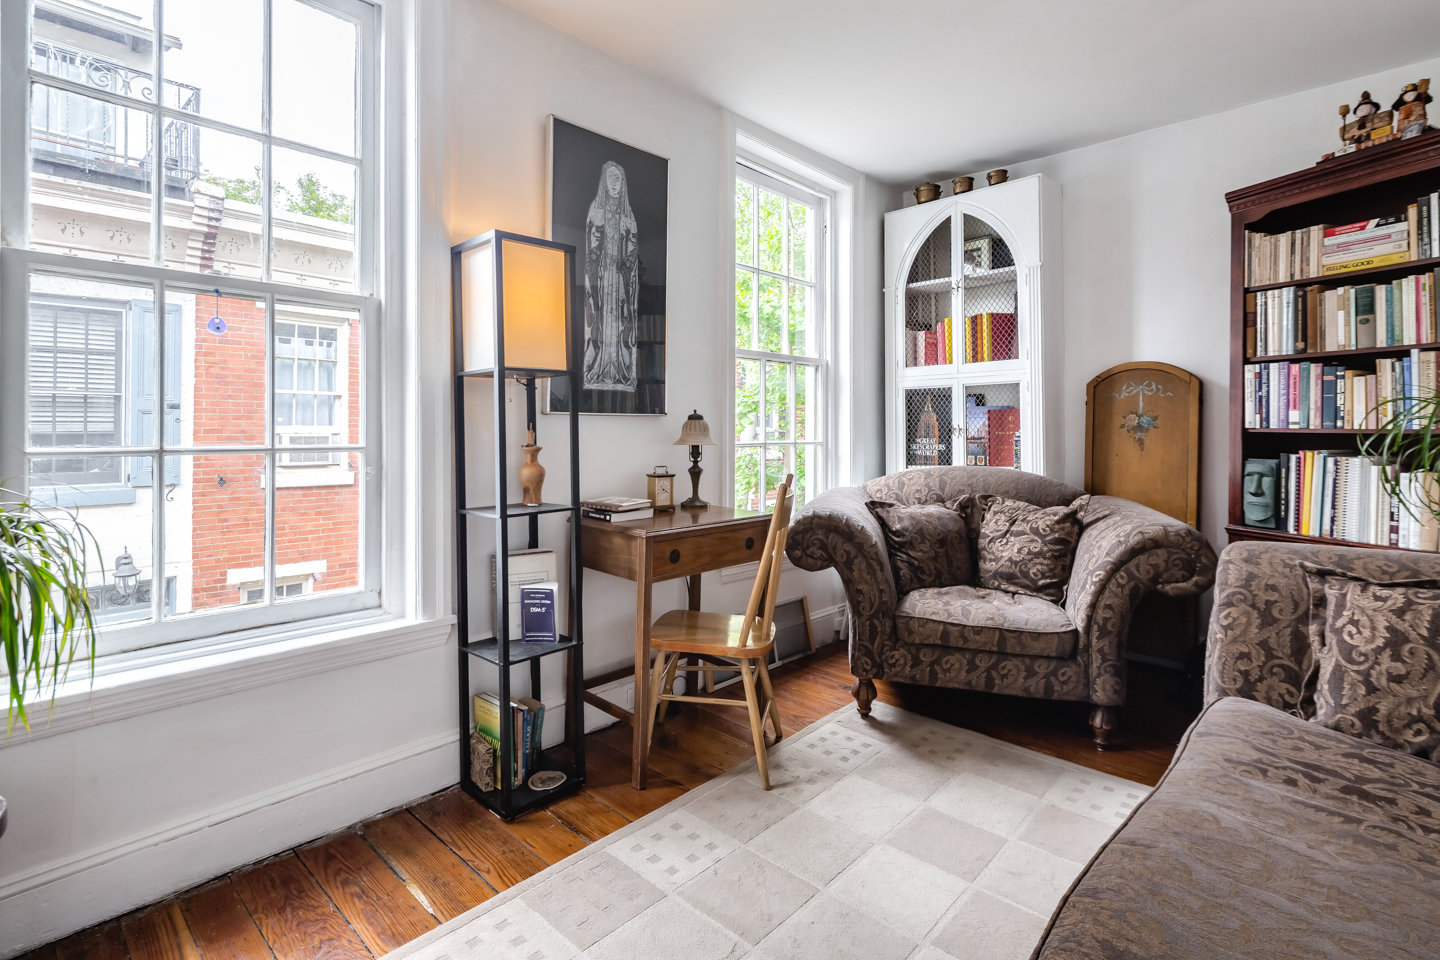 Trinity Tuesday: Old-World Charm in Fitler Square for $845K